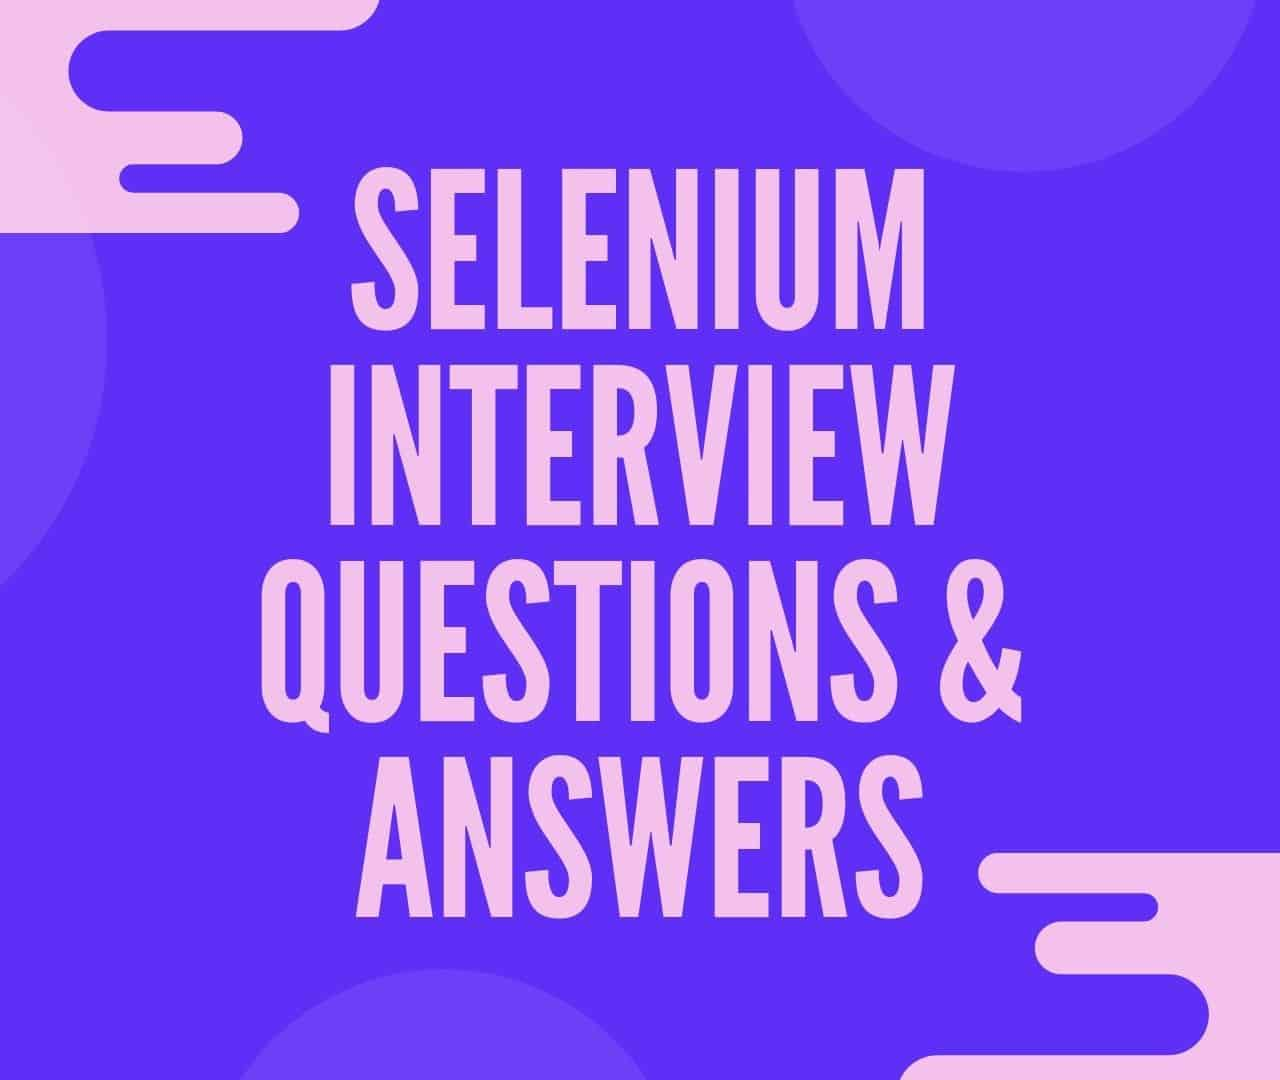 Selenium Interview Questions & Answers for Freshers and Experienced